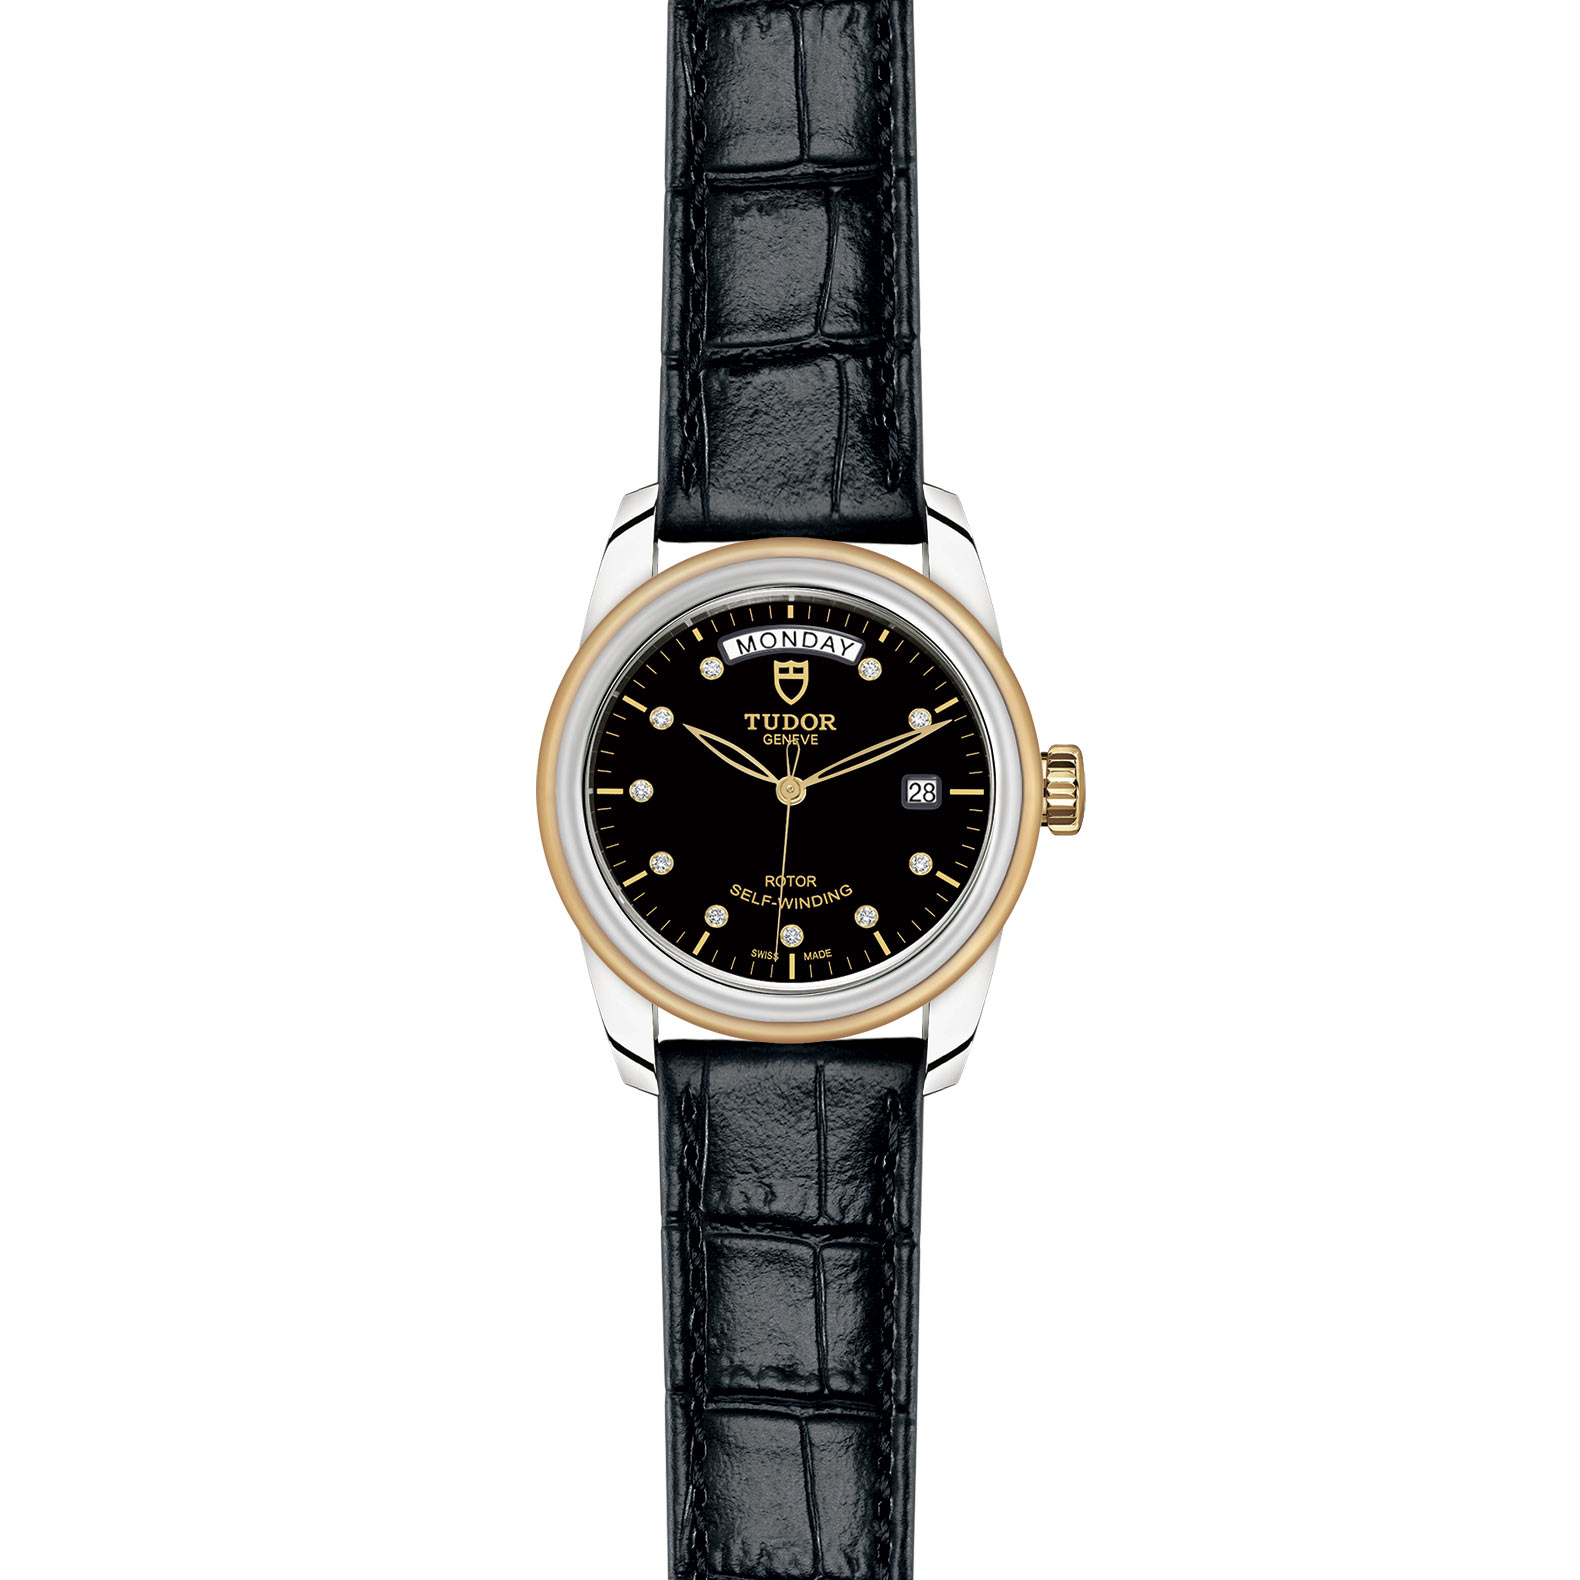 TUDOR Glamour Date Day M56003 0045 Frontfacing